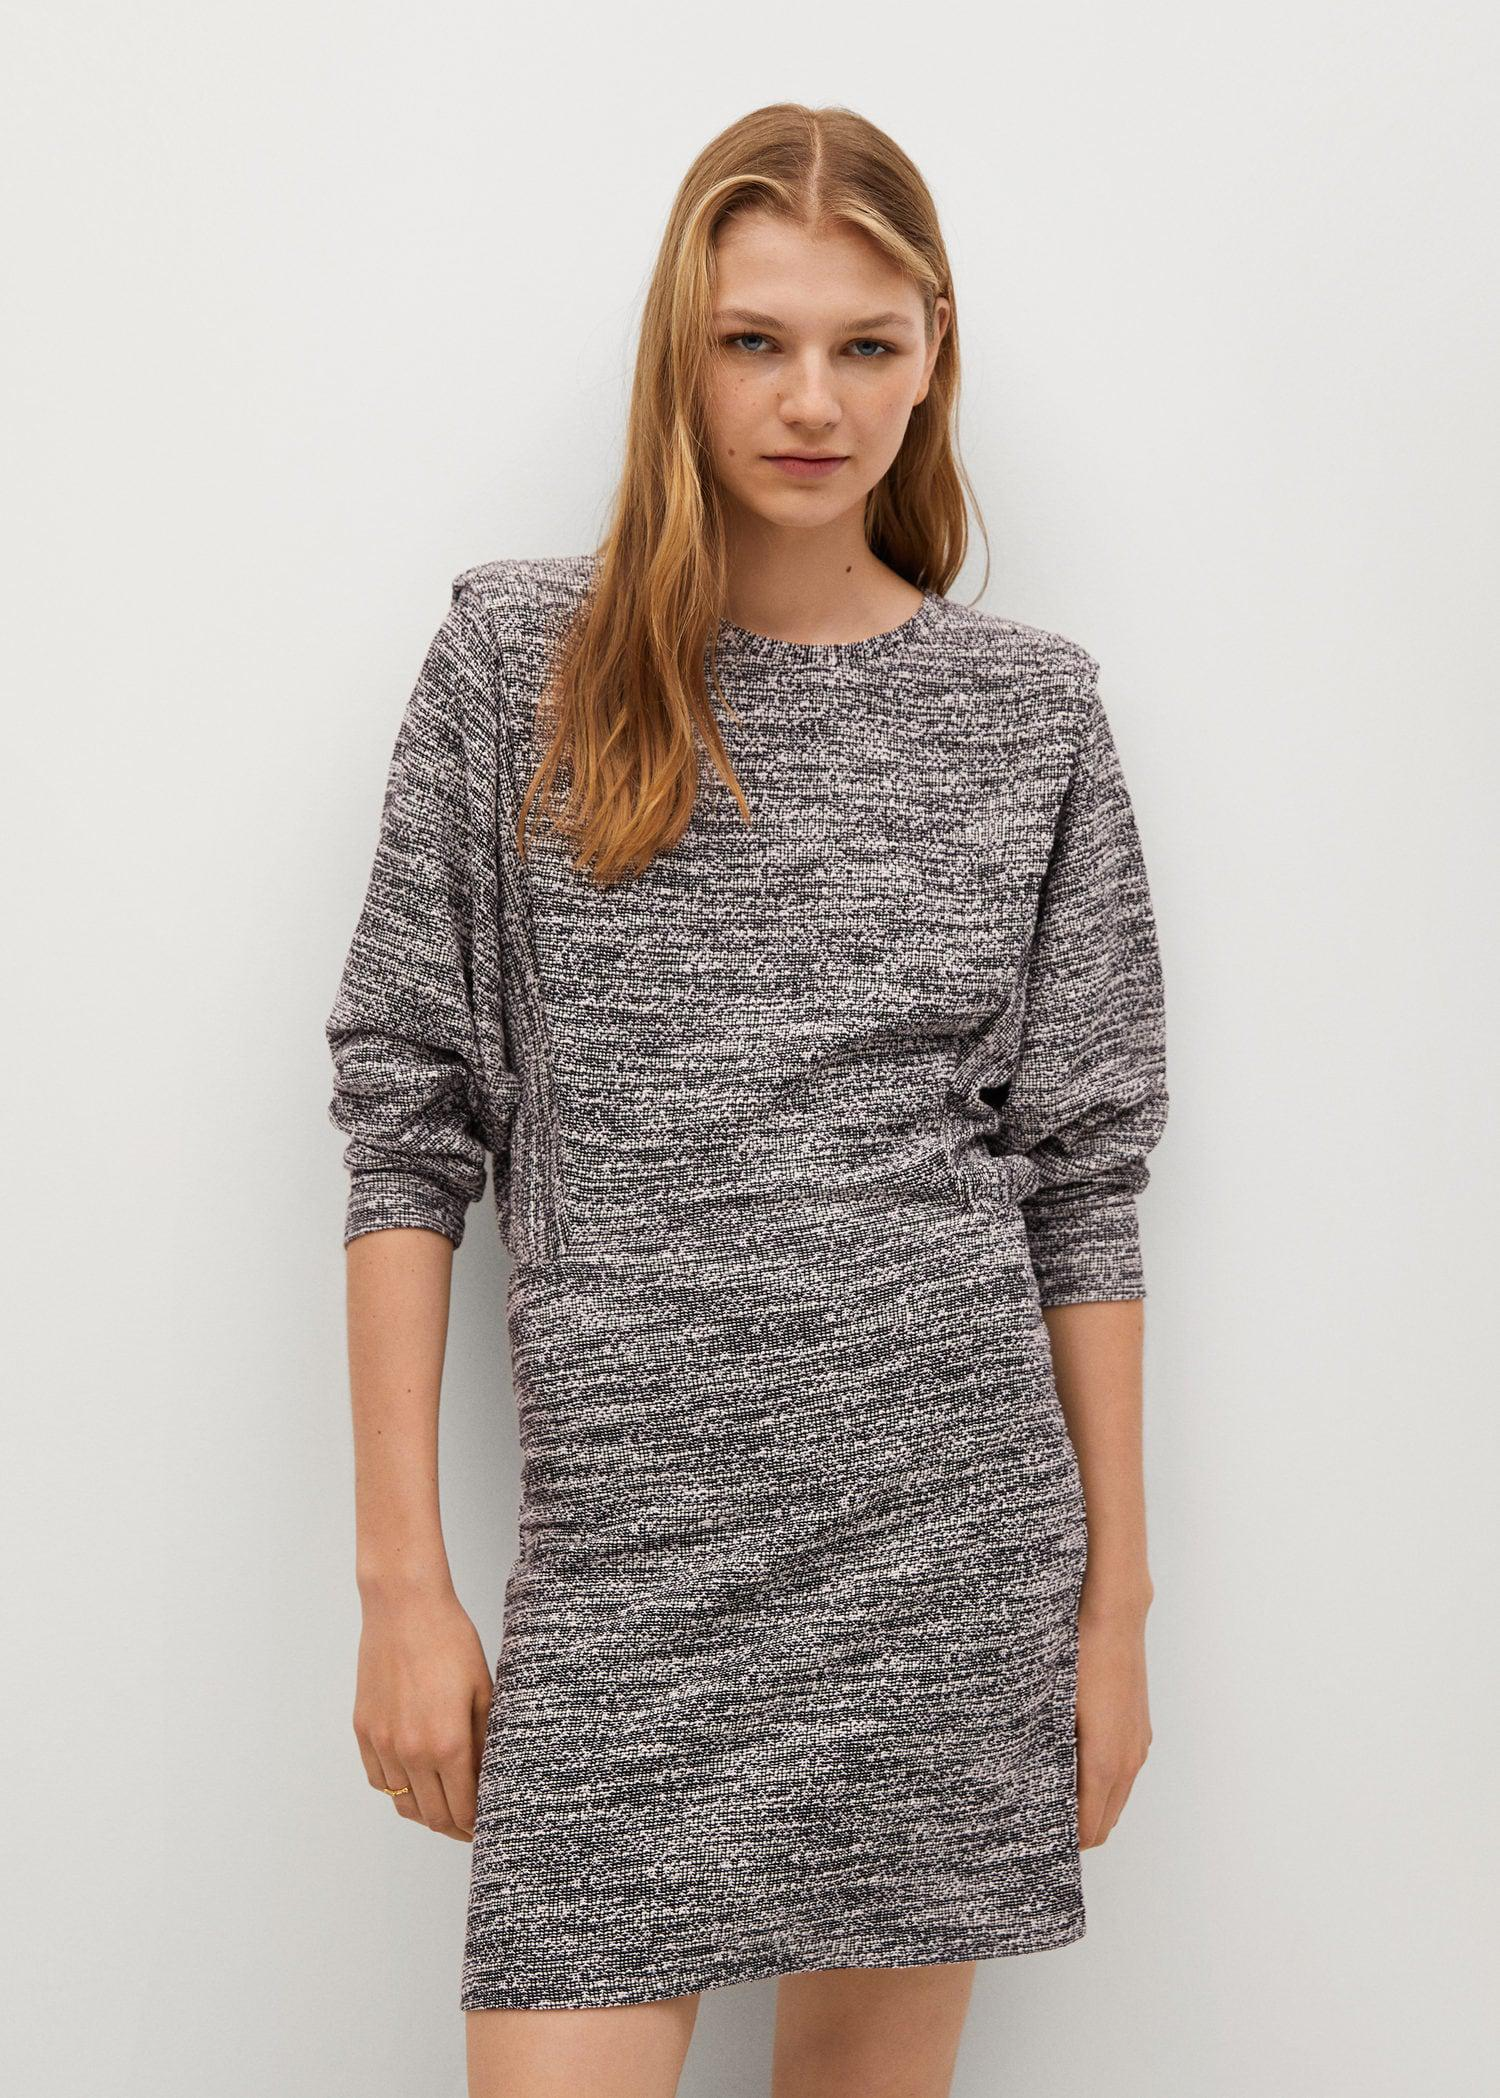 Textured dress with shoulder pads